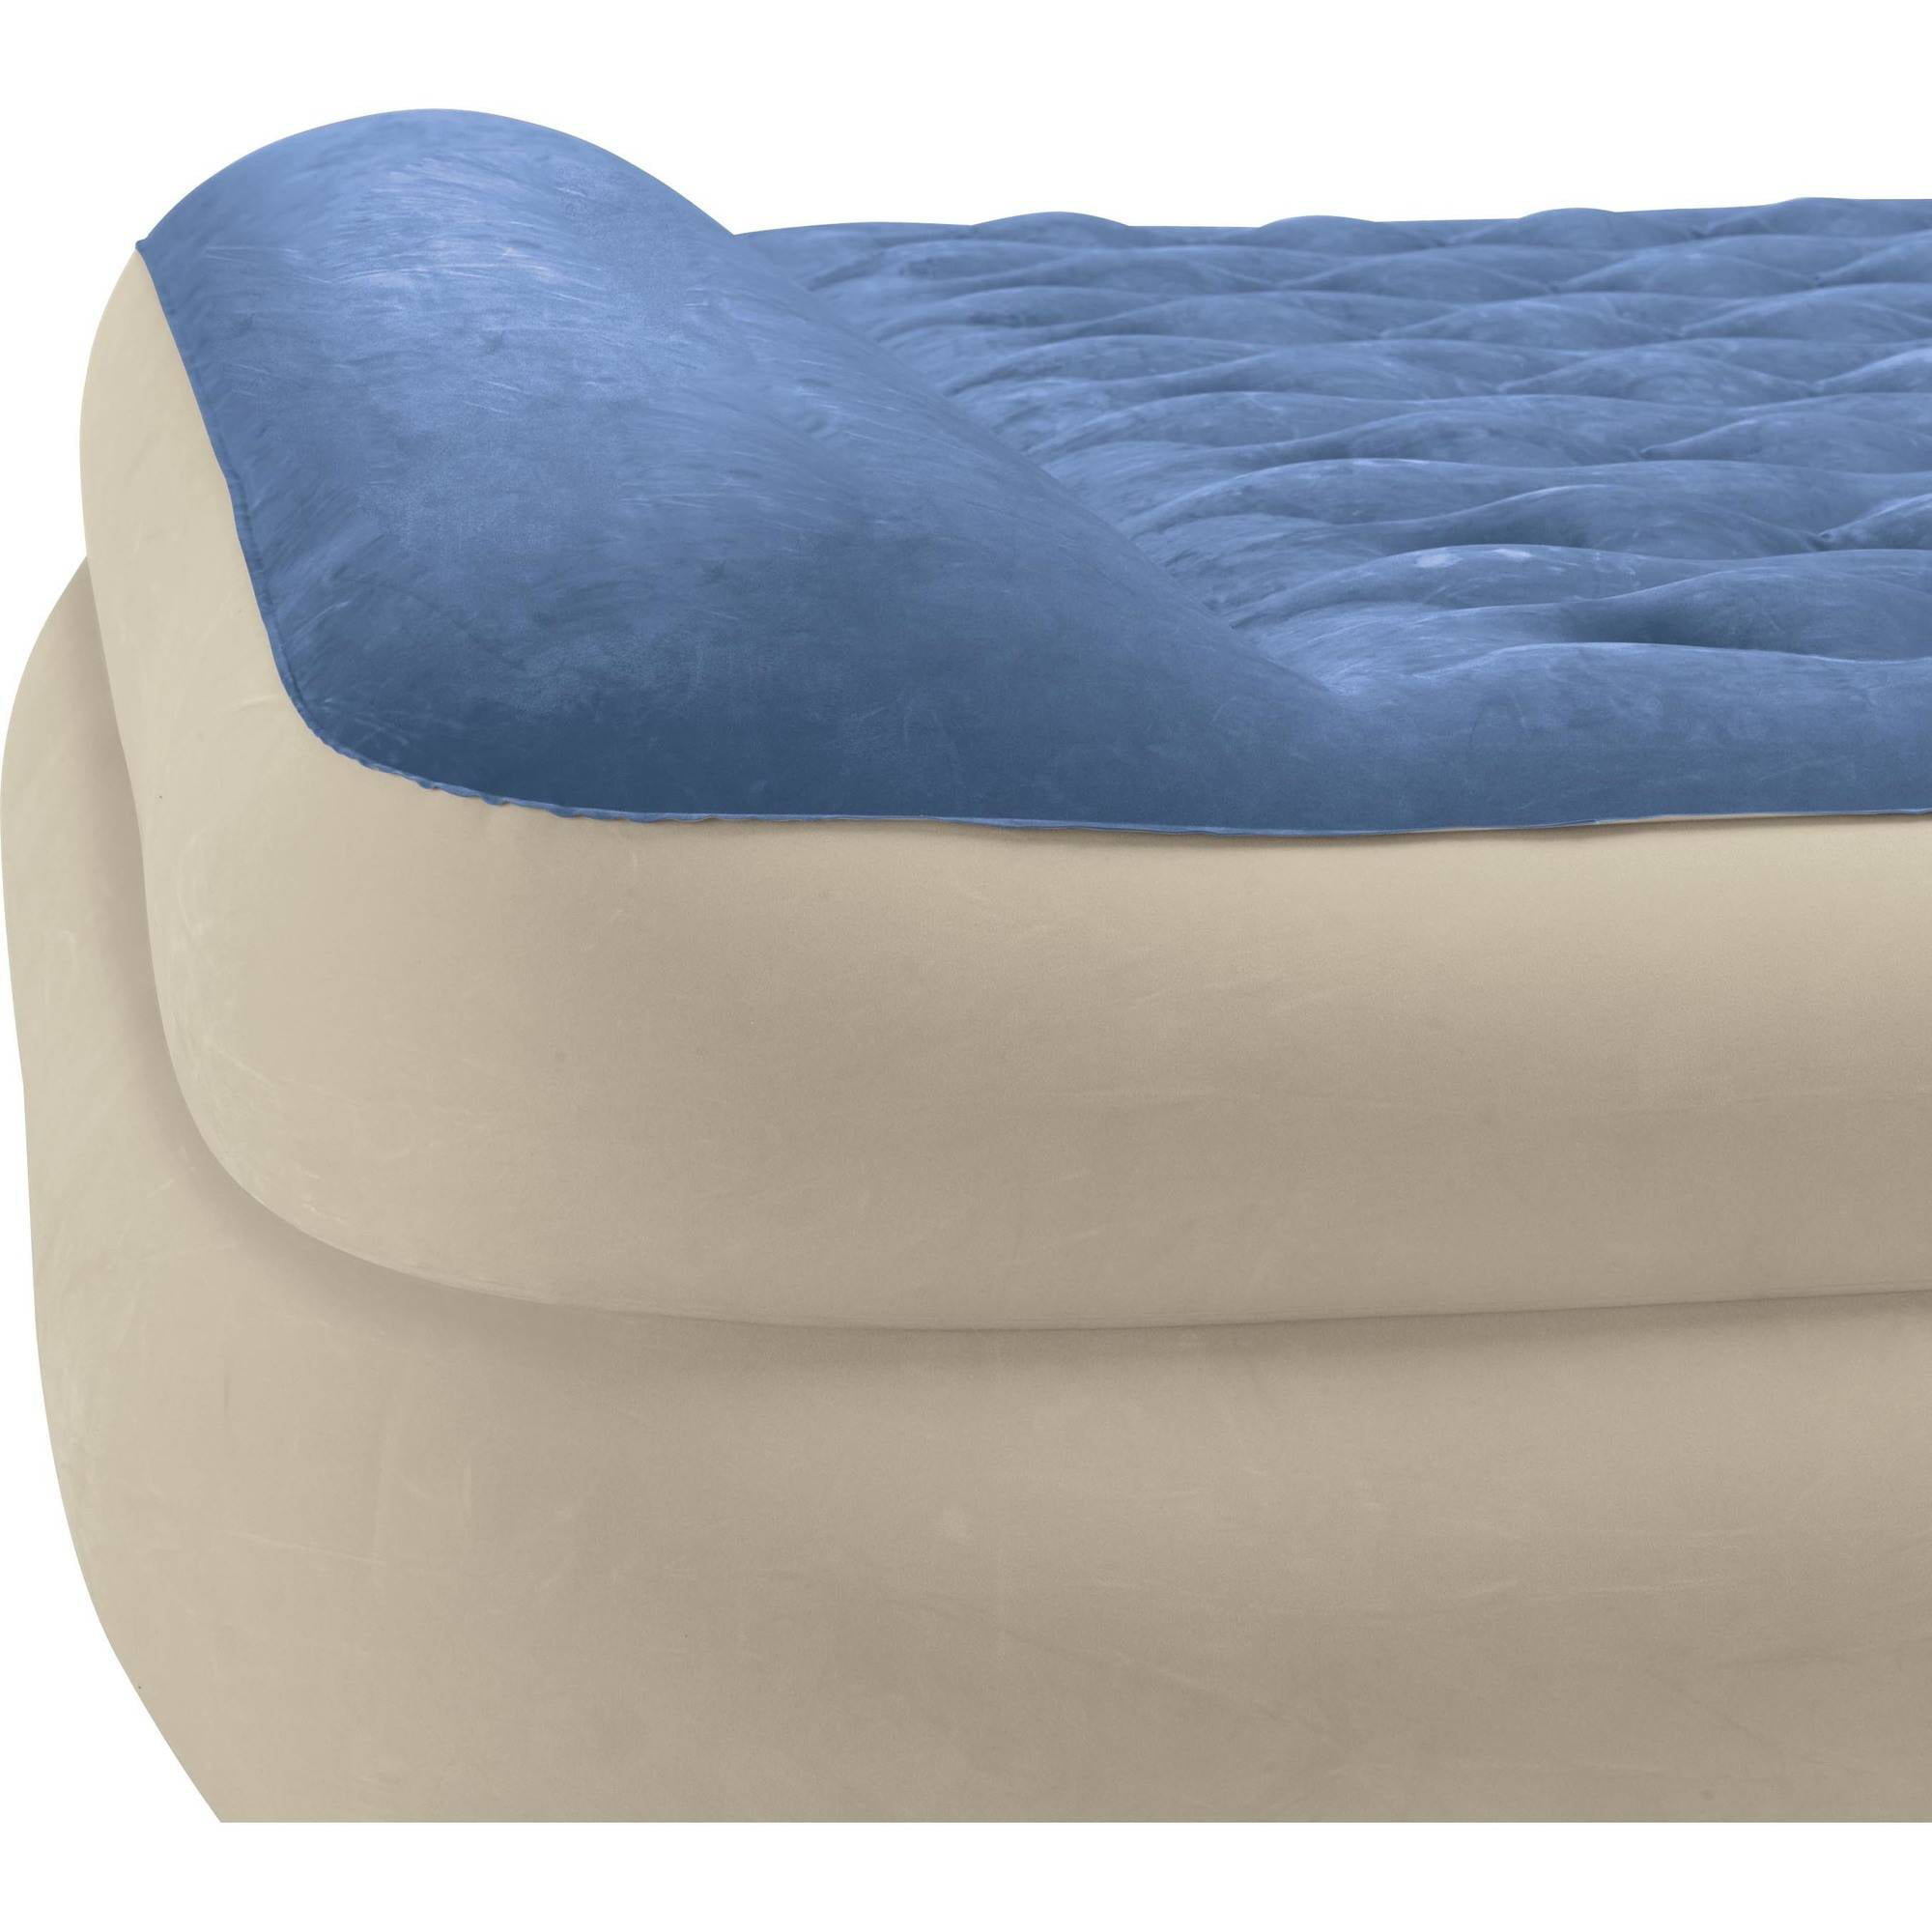 Bed chair pillow walmart - Bed Chair Pillow Walmart 11